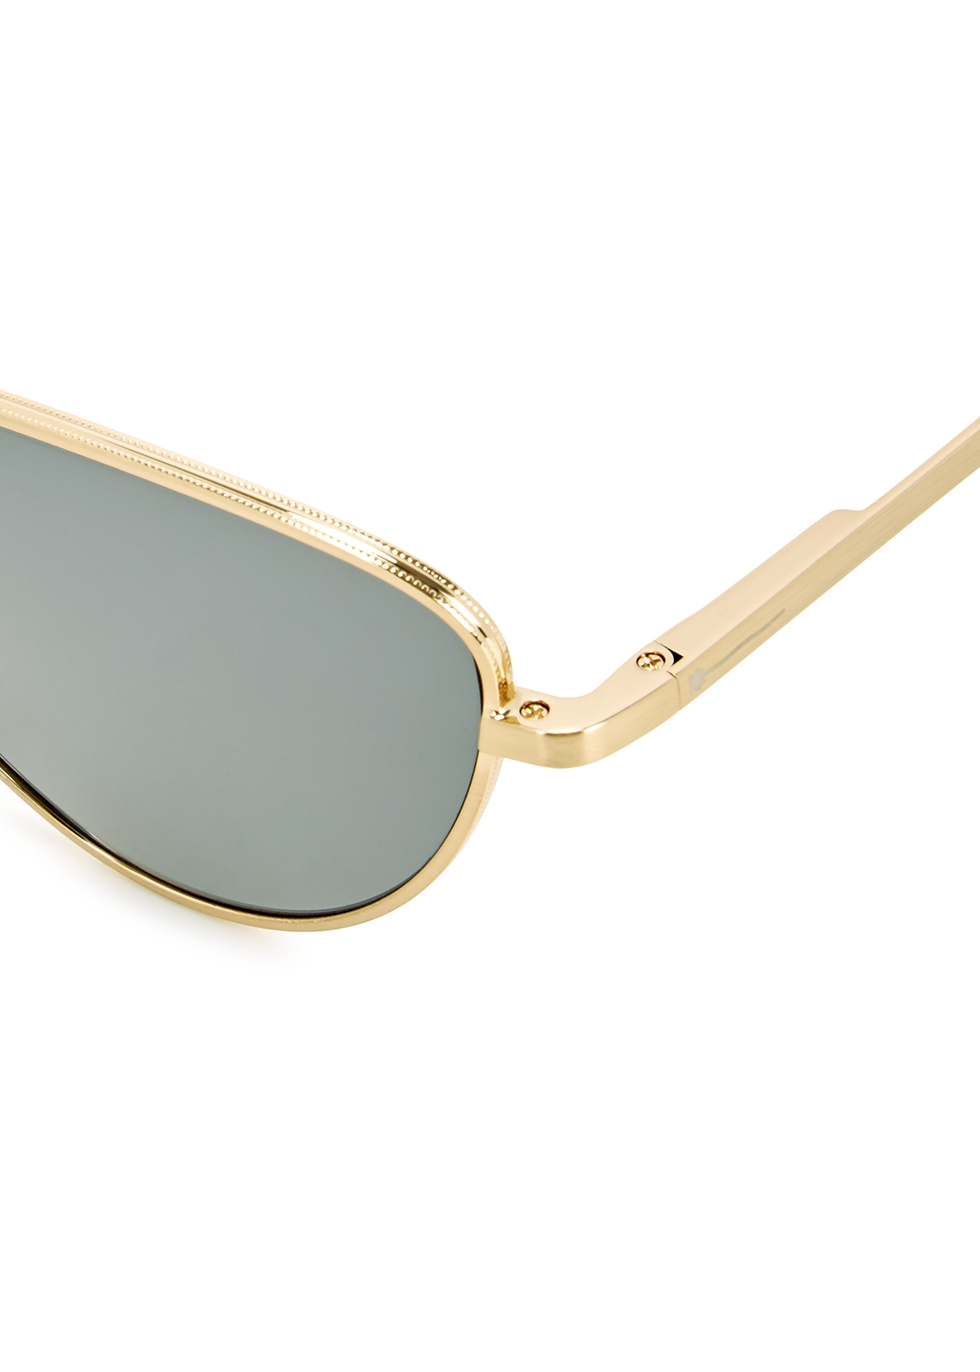 The Honey Buzz cat-eye sunglasses - CRAP EYEWEAR